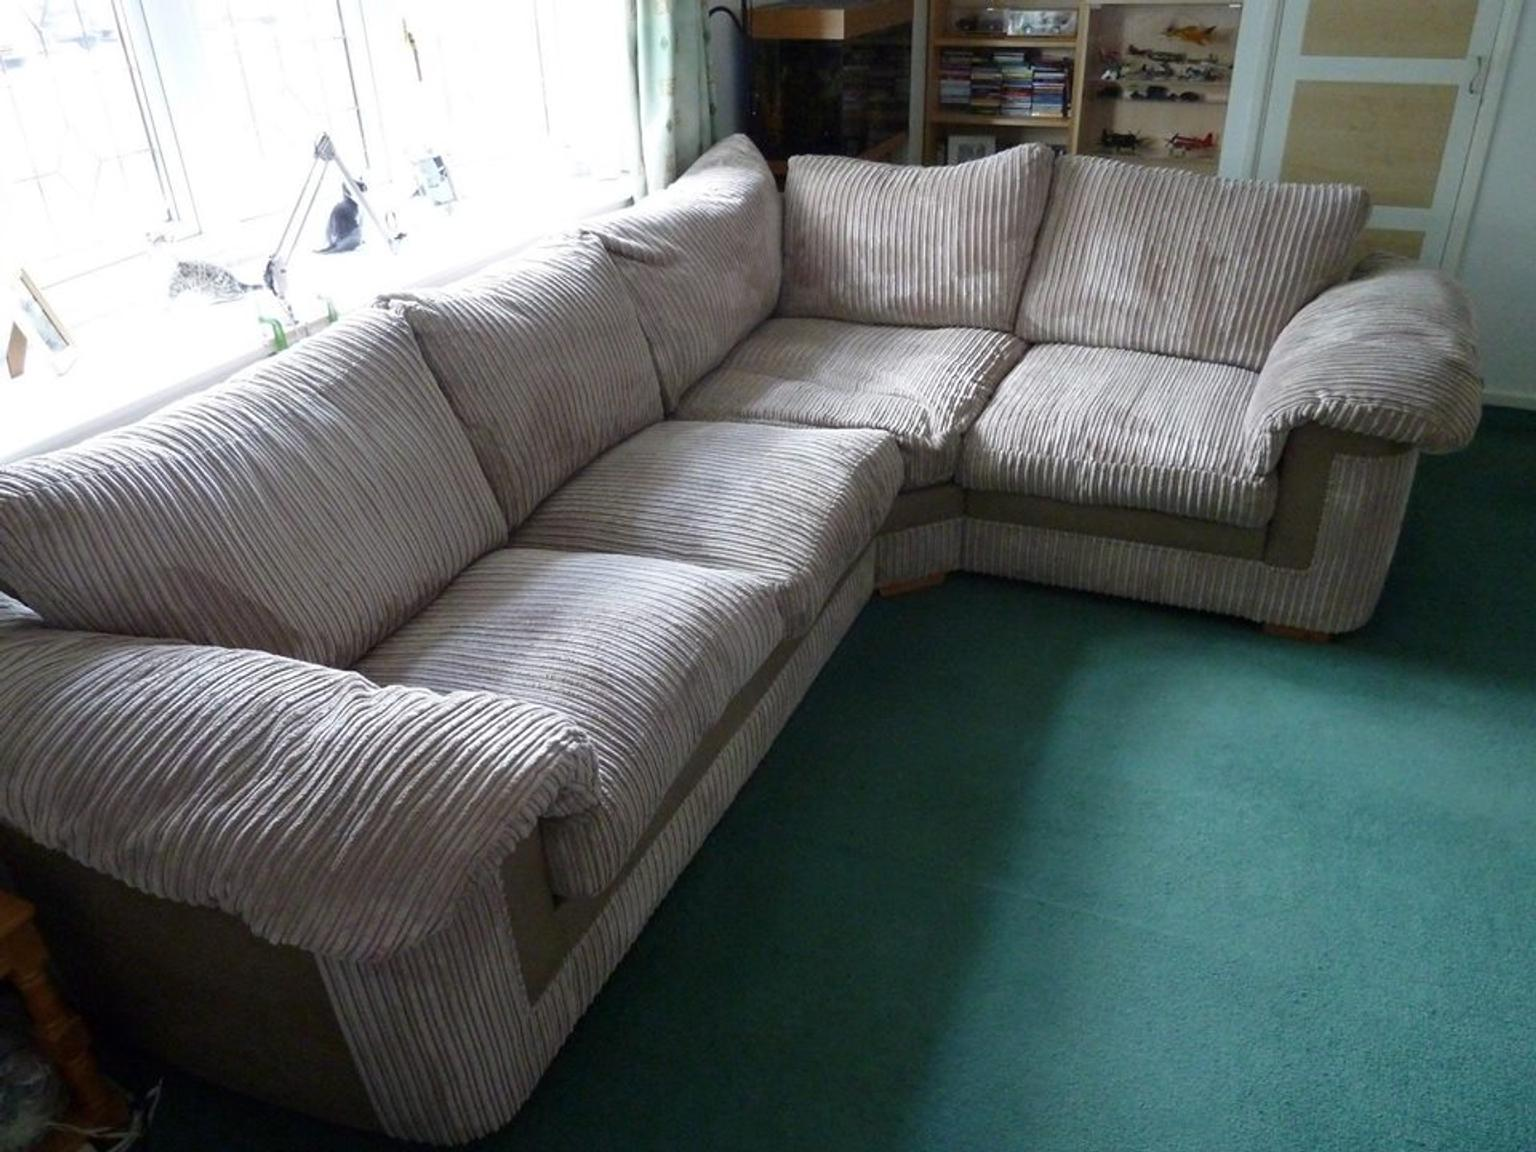 Jumbo Cord Sofology Large Corner Sofa In CM5 Forest For £195.00 For Sale   Shpock